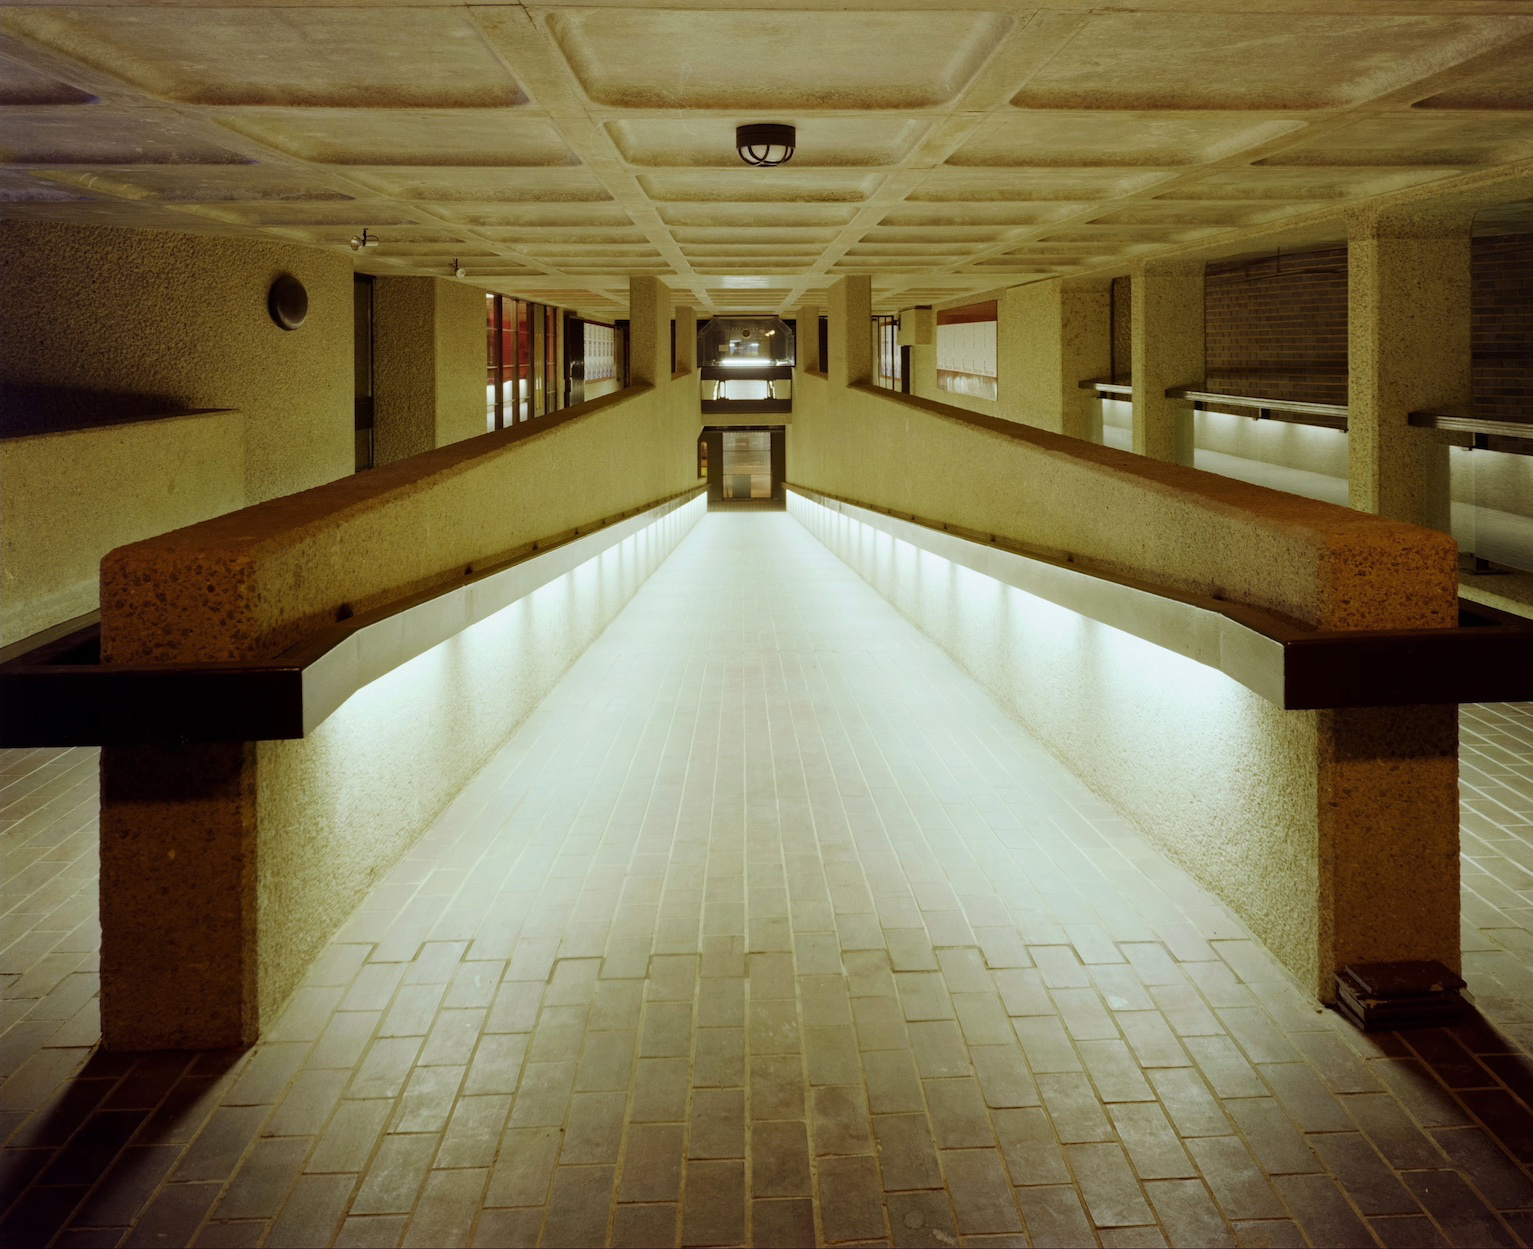 A view of a pedestrian passage to the Barbican Centre, taken on the day the centre was opened in 1982. © Historic England Archive. John Laing Photographic Collection.